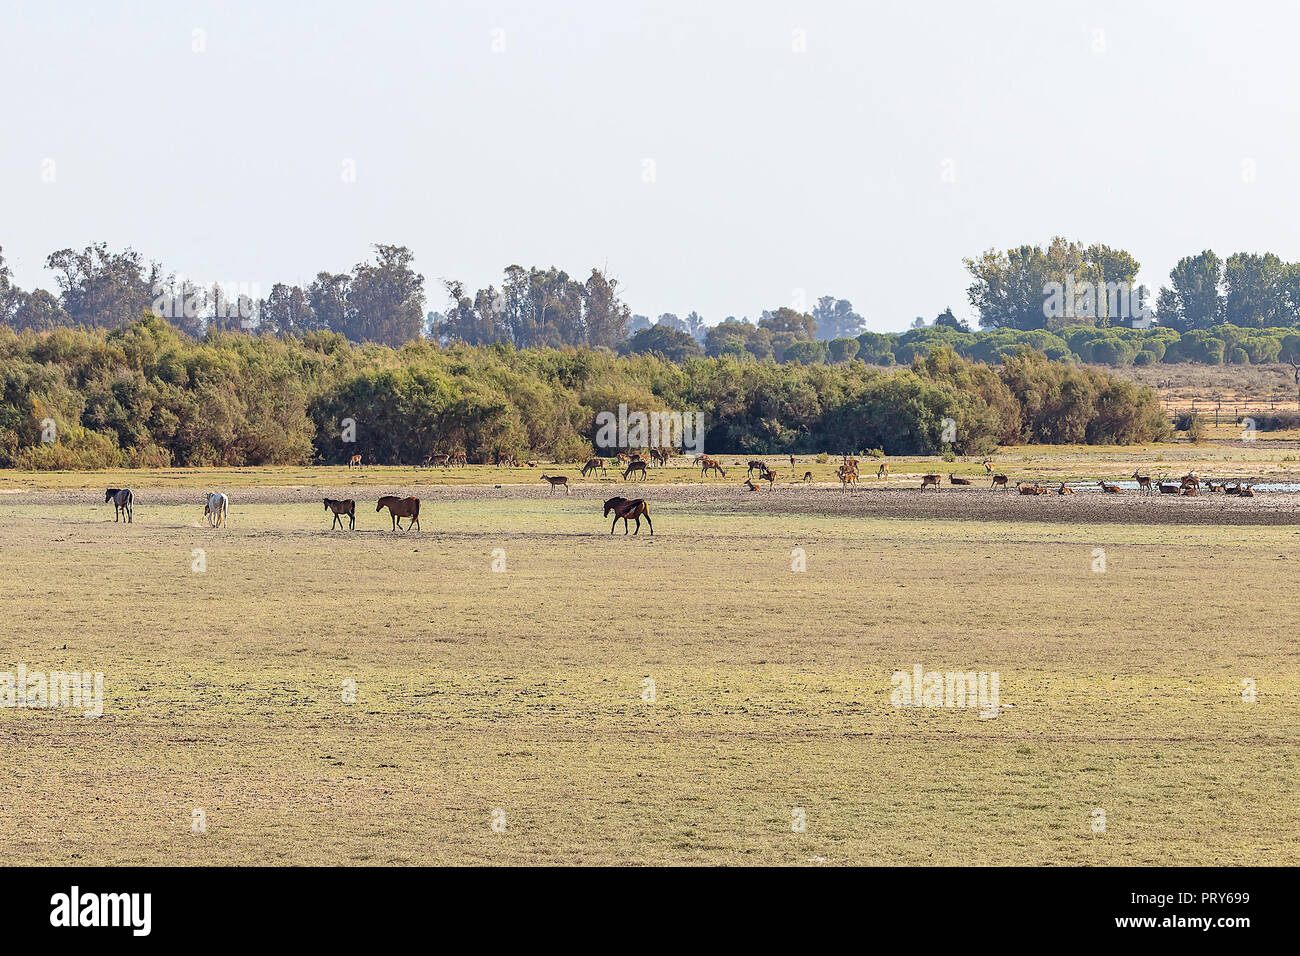 Mating Horses Stock Photos & Mating Horses Stock Images - Alamy